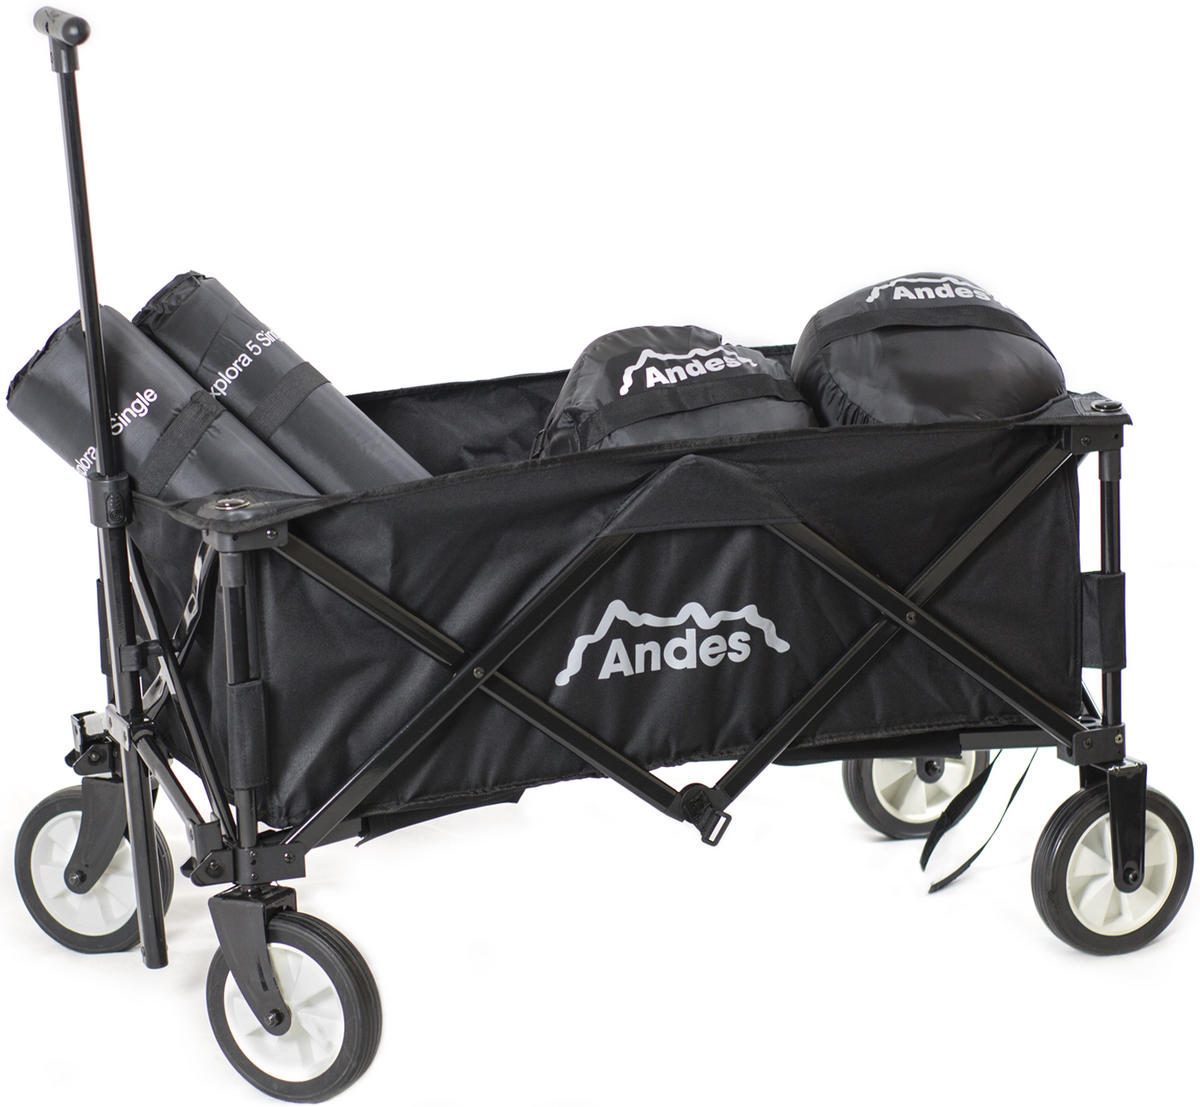 Andes Folding Wagon